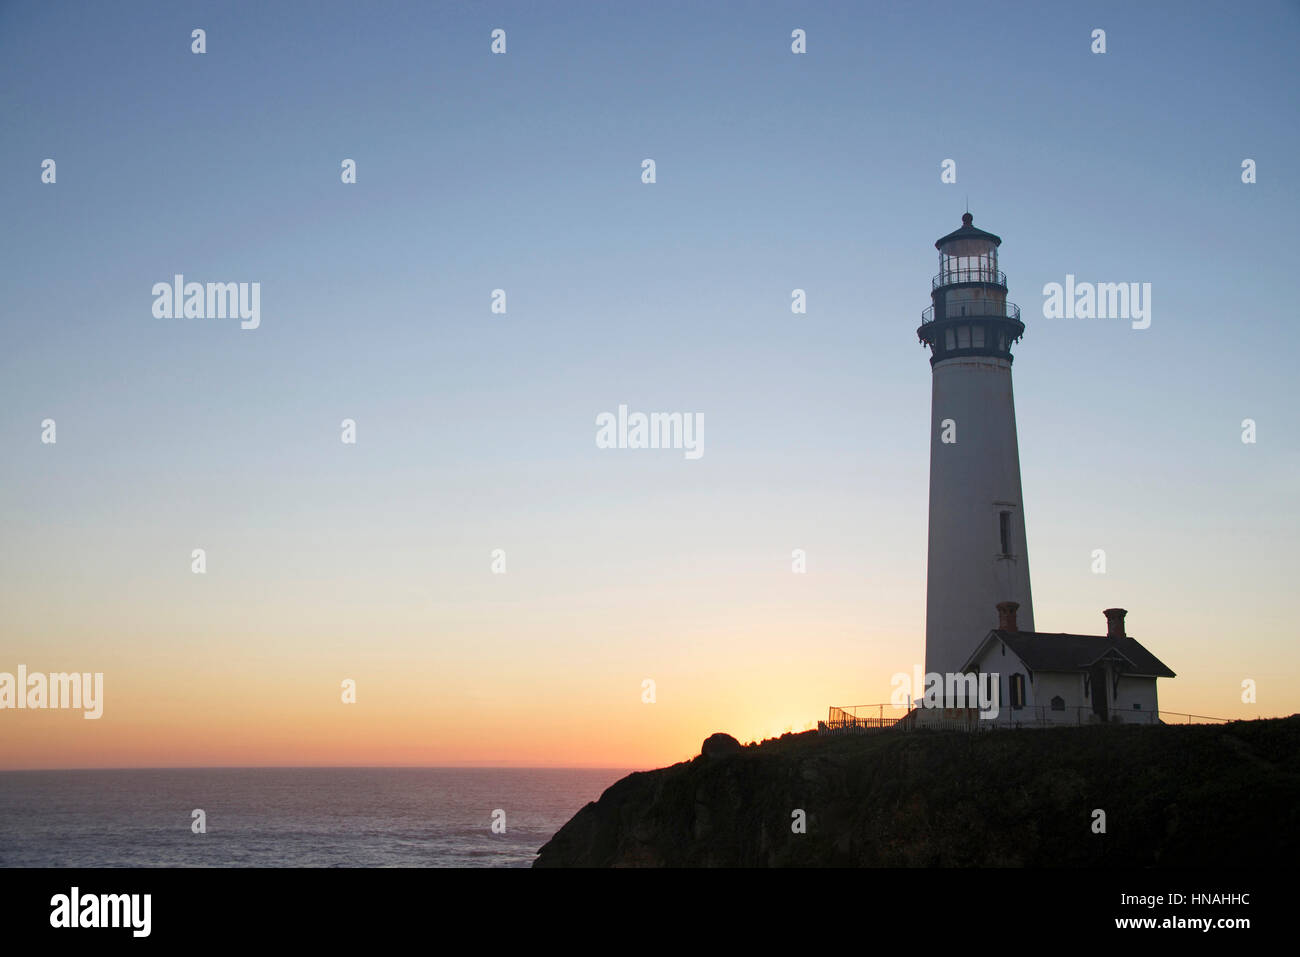 Historic lighthouse on a hill top on the coast of Northern California at Sunset, sun setting behind the light house Stock Photo